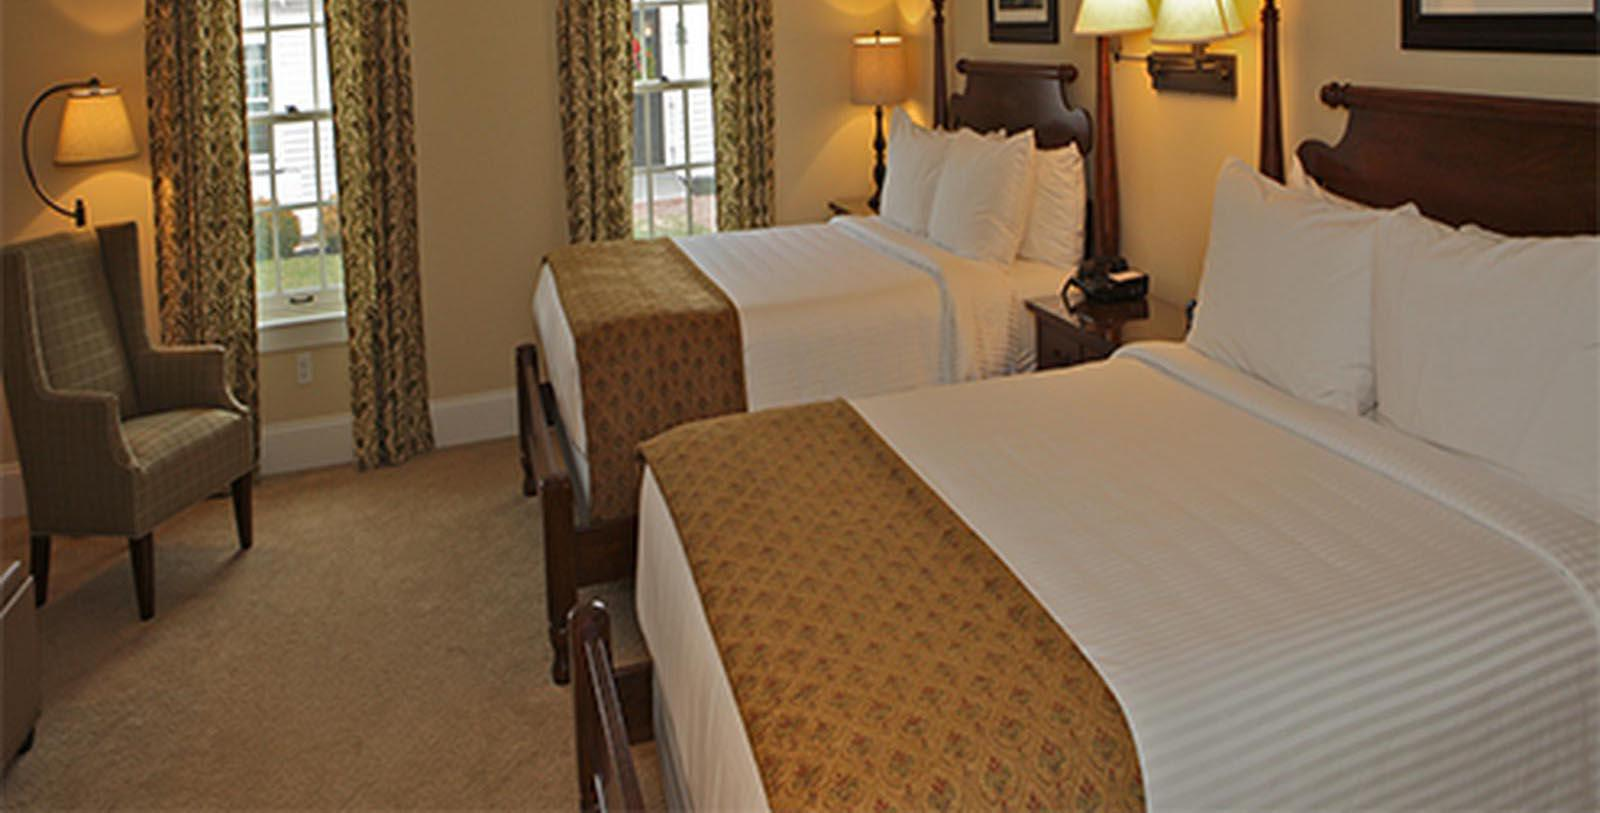 Image of Guestroom Publick House Historic Inn, 1771, Member of Historic Hotels of America, in Sturbridge, Massachusetts, Location